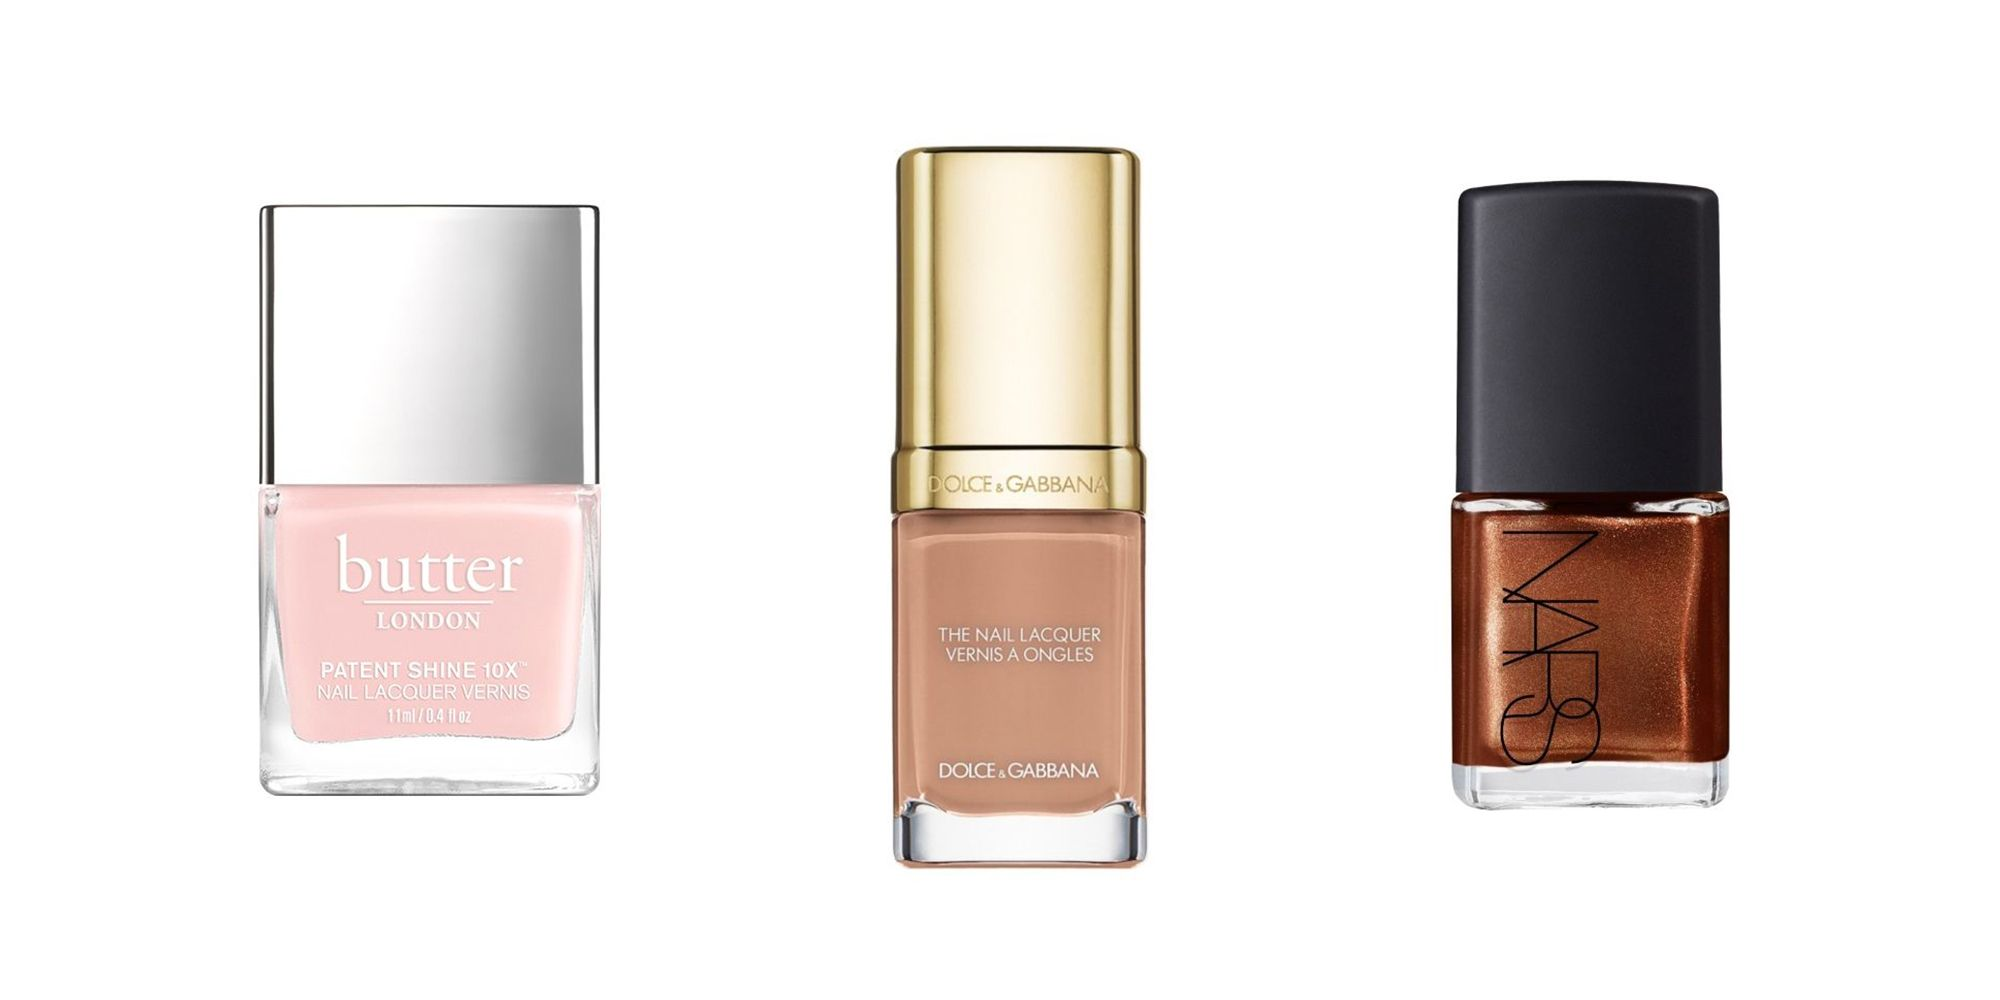 12 Best Nude Nail Polish Colors - Favorite Neutral Nail Colors